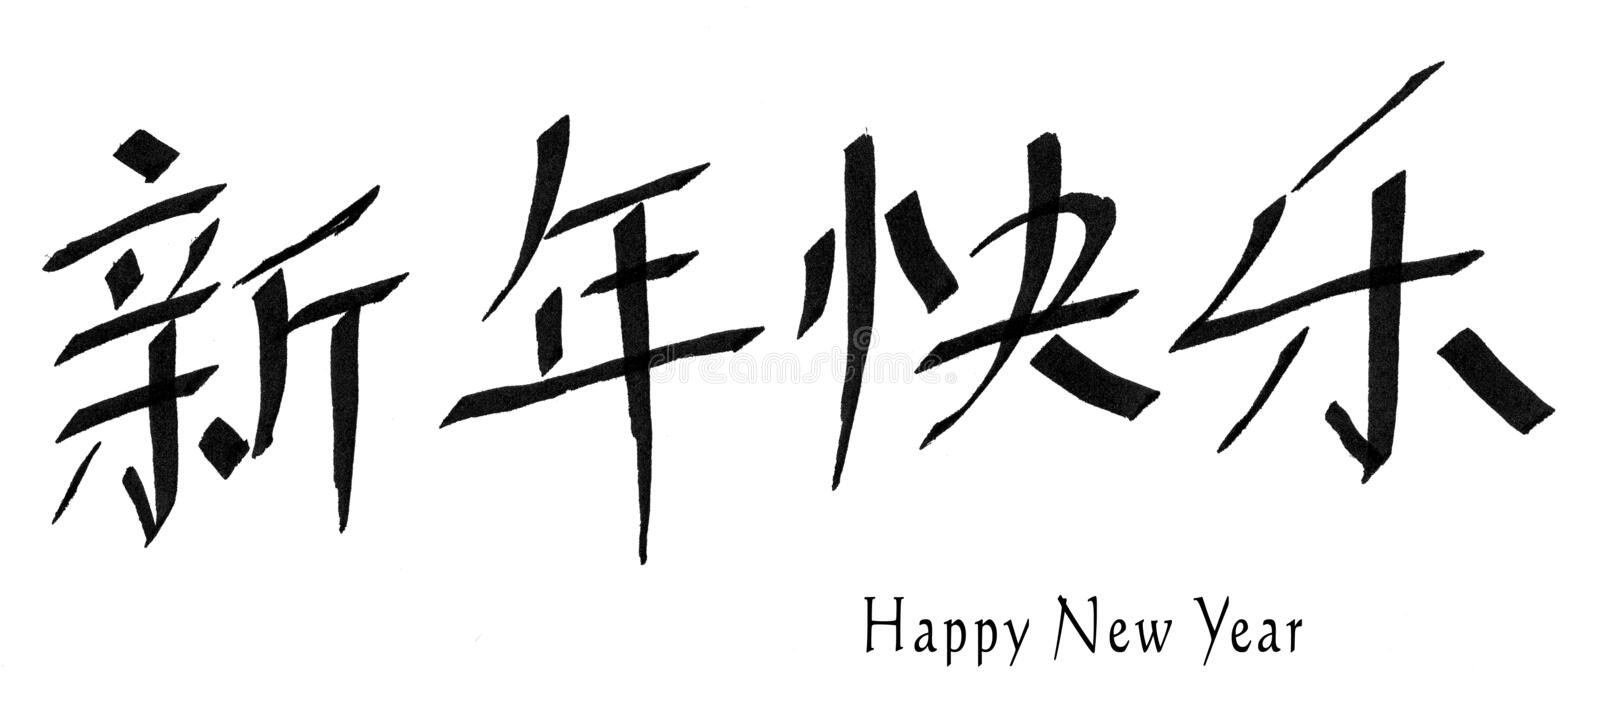 Happy New Year in Chinese stock illustration Illustration of